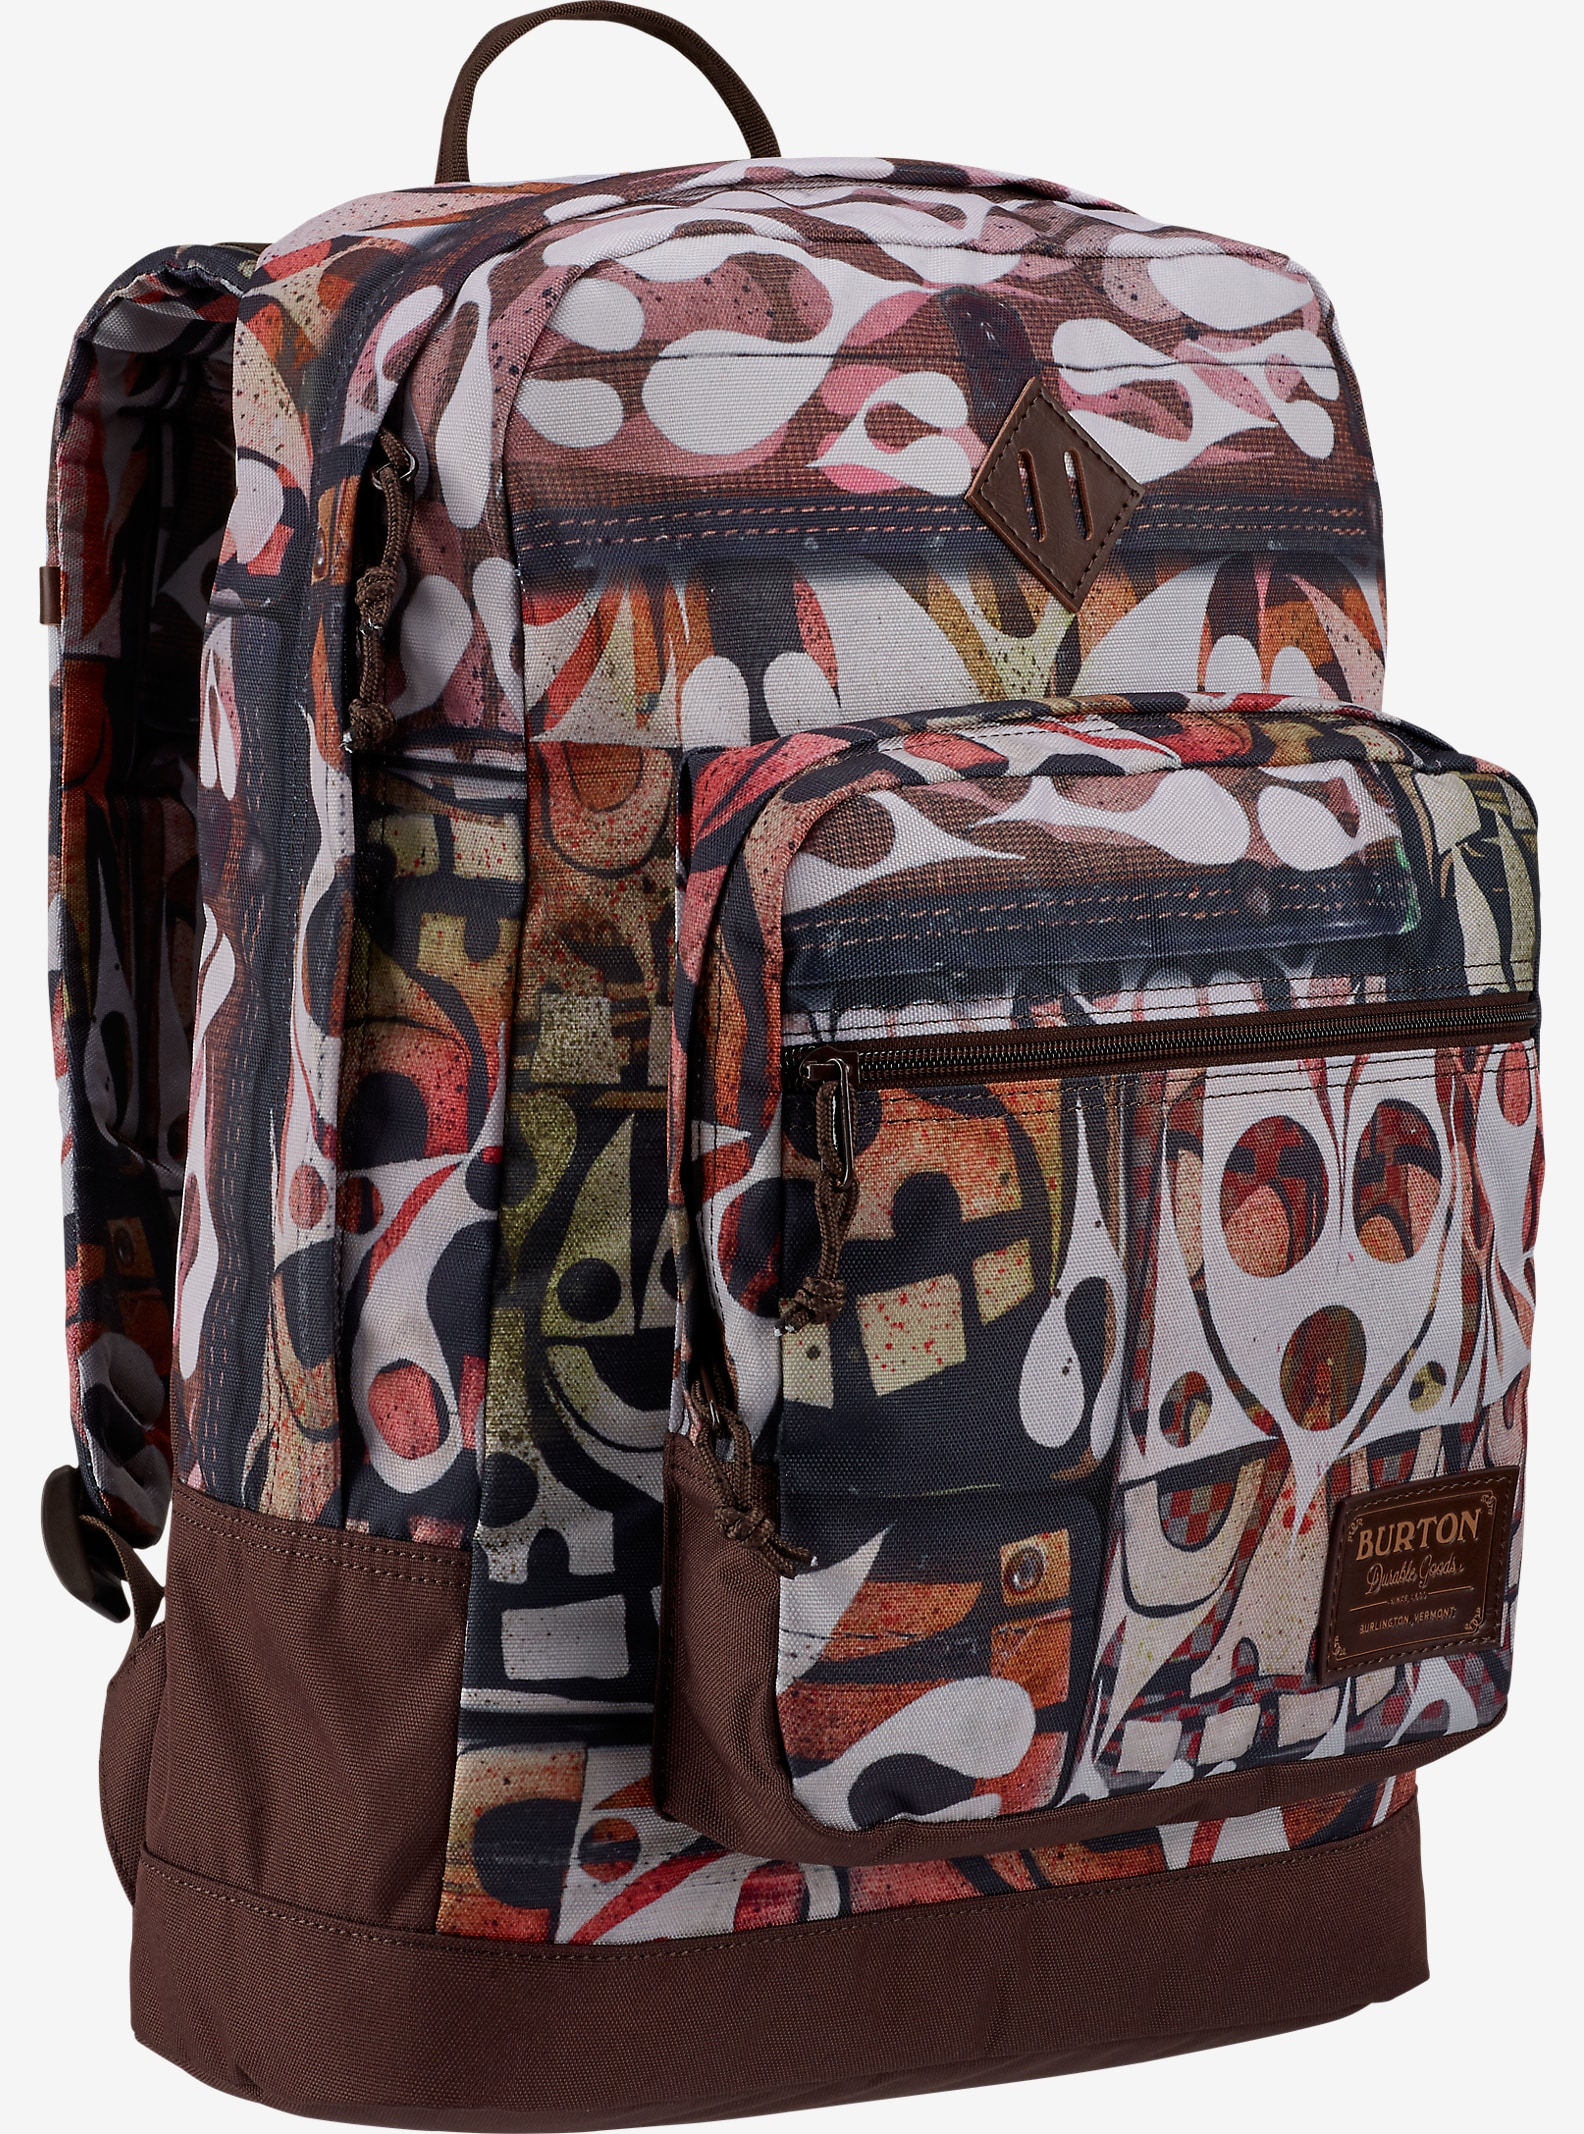 Phil Frost × G Pen × Burton Big Kettle Backpack shown in Phil Frost